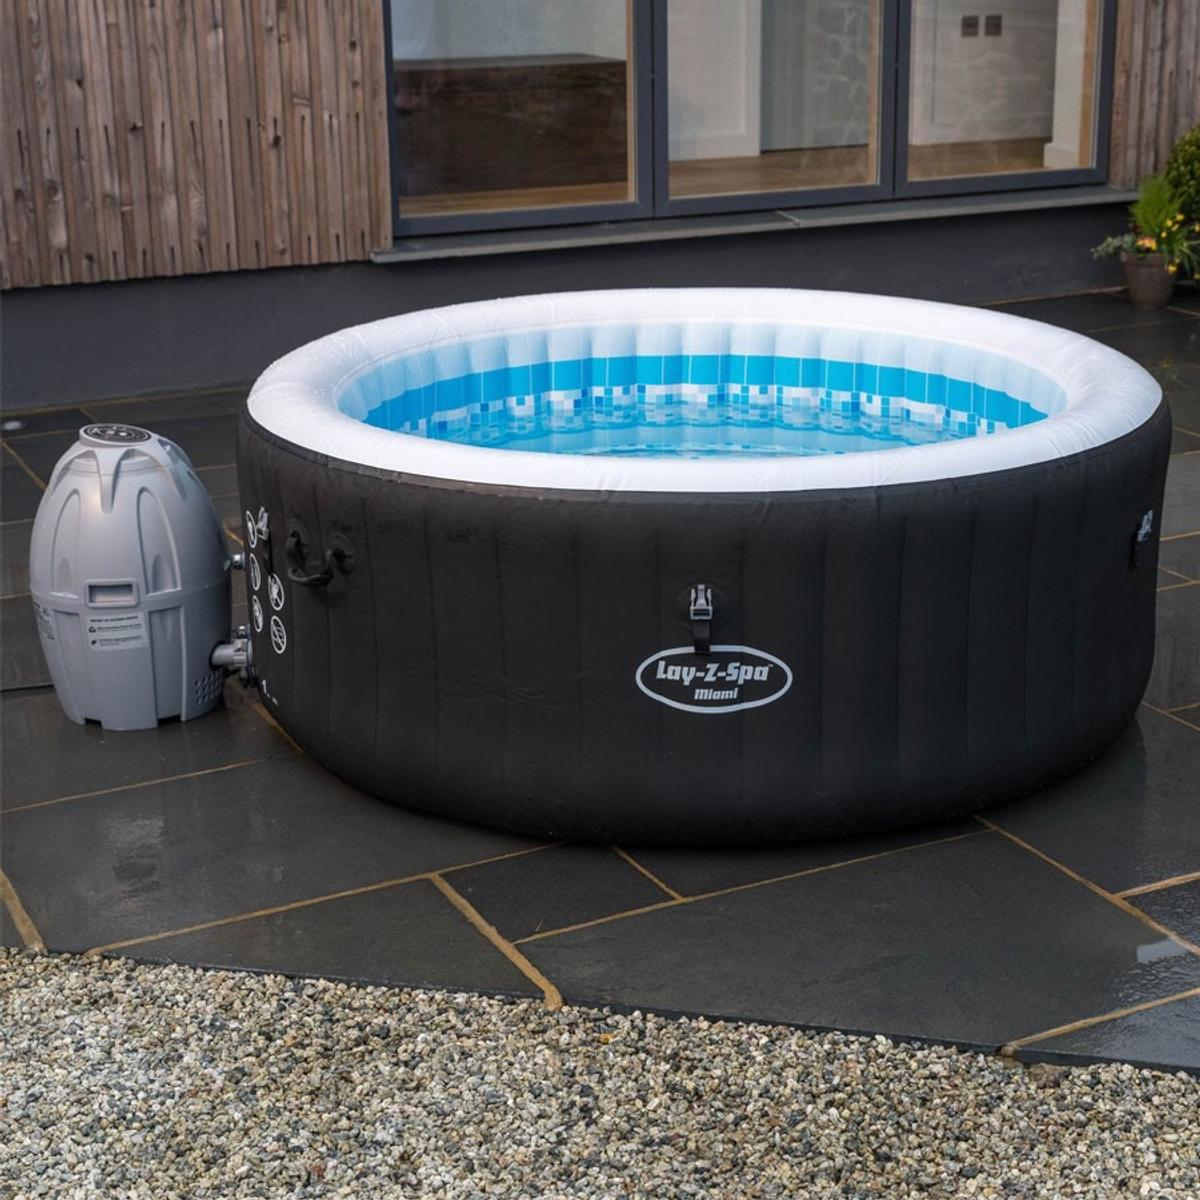 Nykomna Lay-Z Spa Miami Hot Tub in DN22 Bassetlaw for £250.00 for sale WE-57